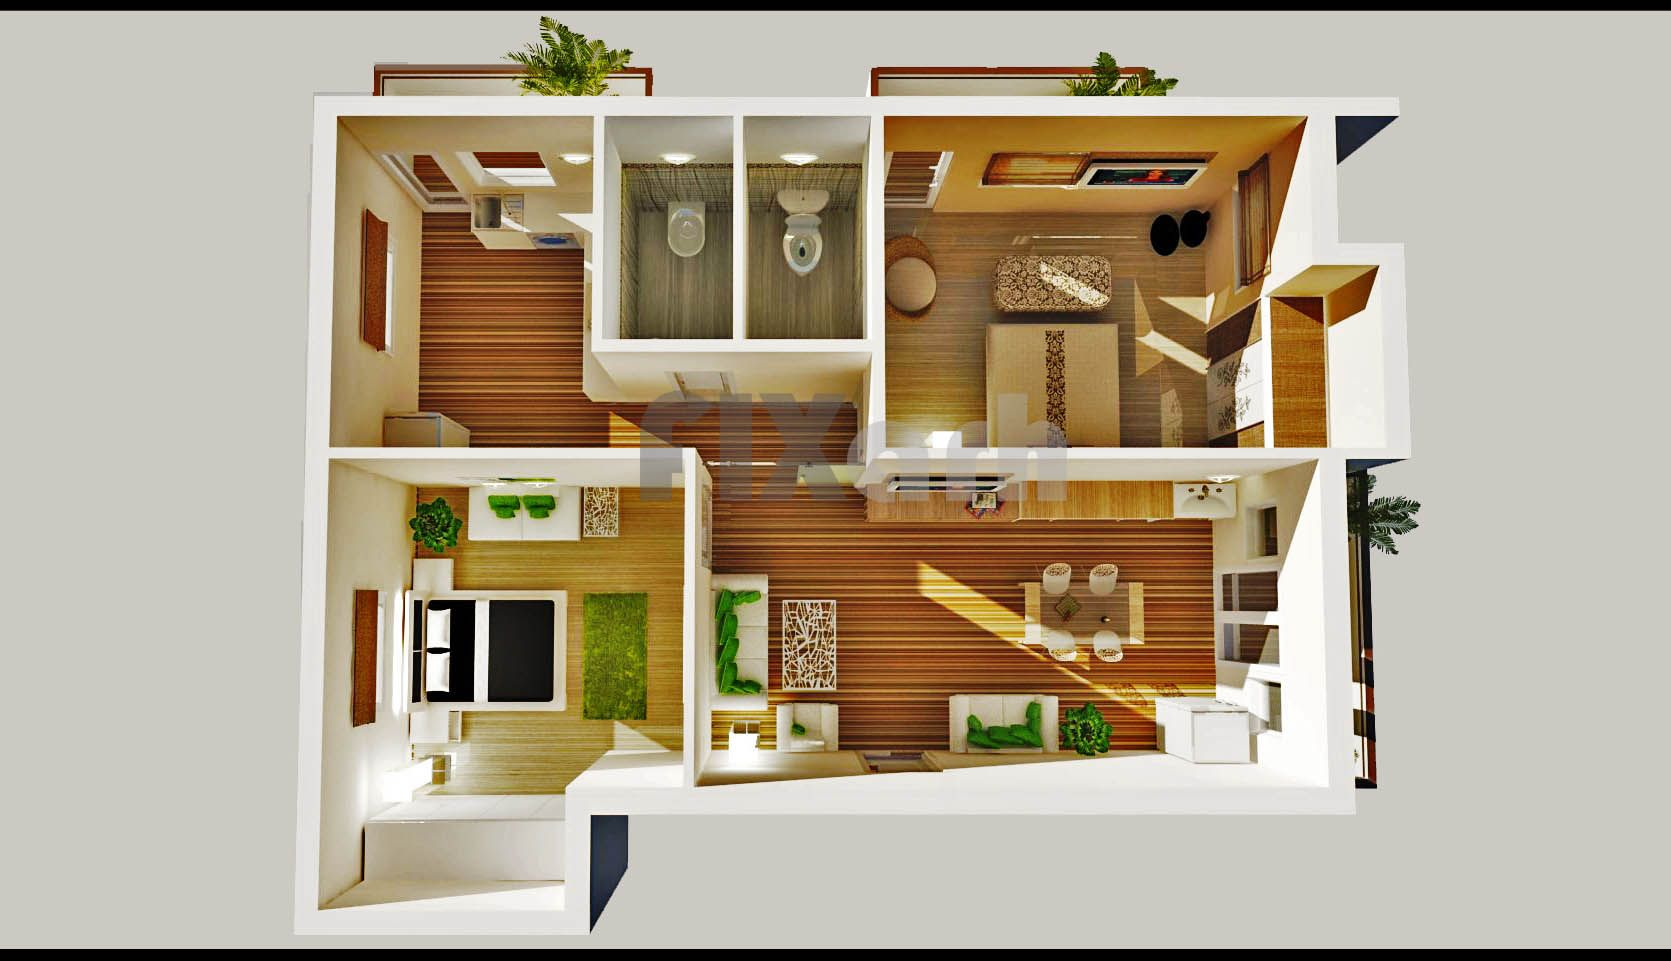 Apartments Tempe Moreover Bedroom Garage Apartment Floor Plans House With Large Bedrooms